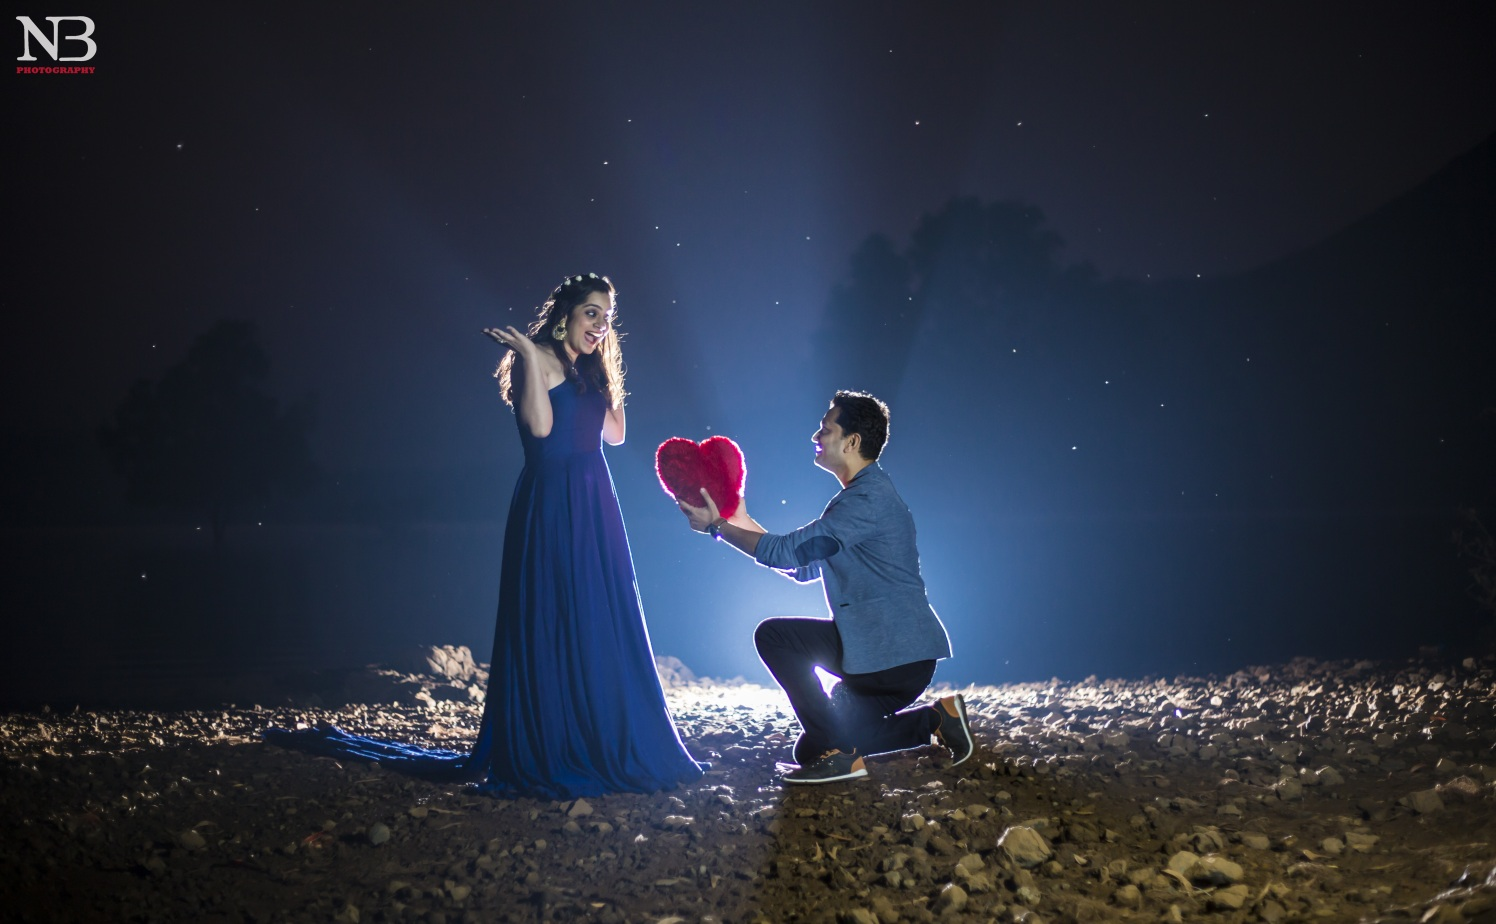 The Stylized Romantic Pre-Wedding Shoot Under The Moonlight by Nikhil Y. Bharane Wedding-photography | Weddings Photos & Ideas